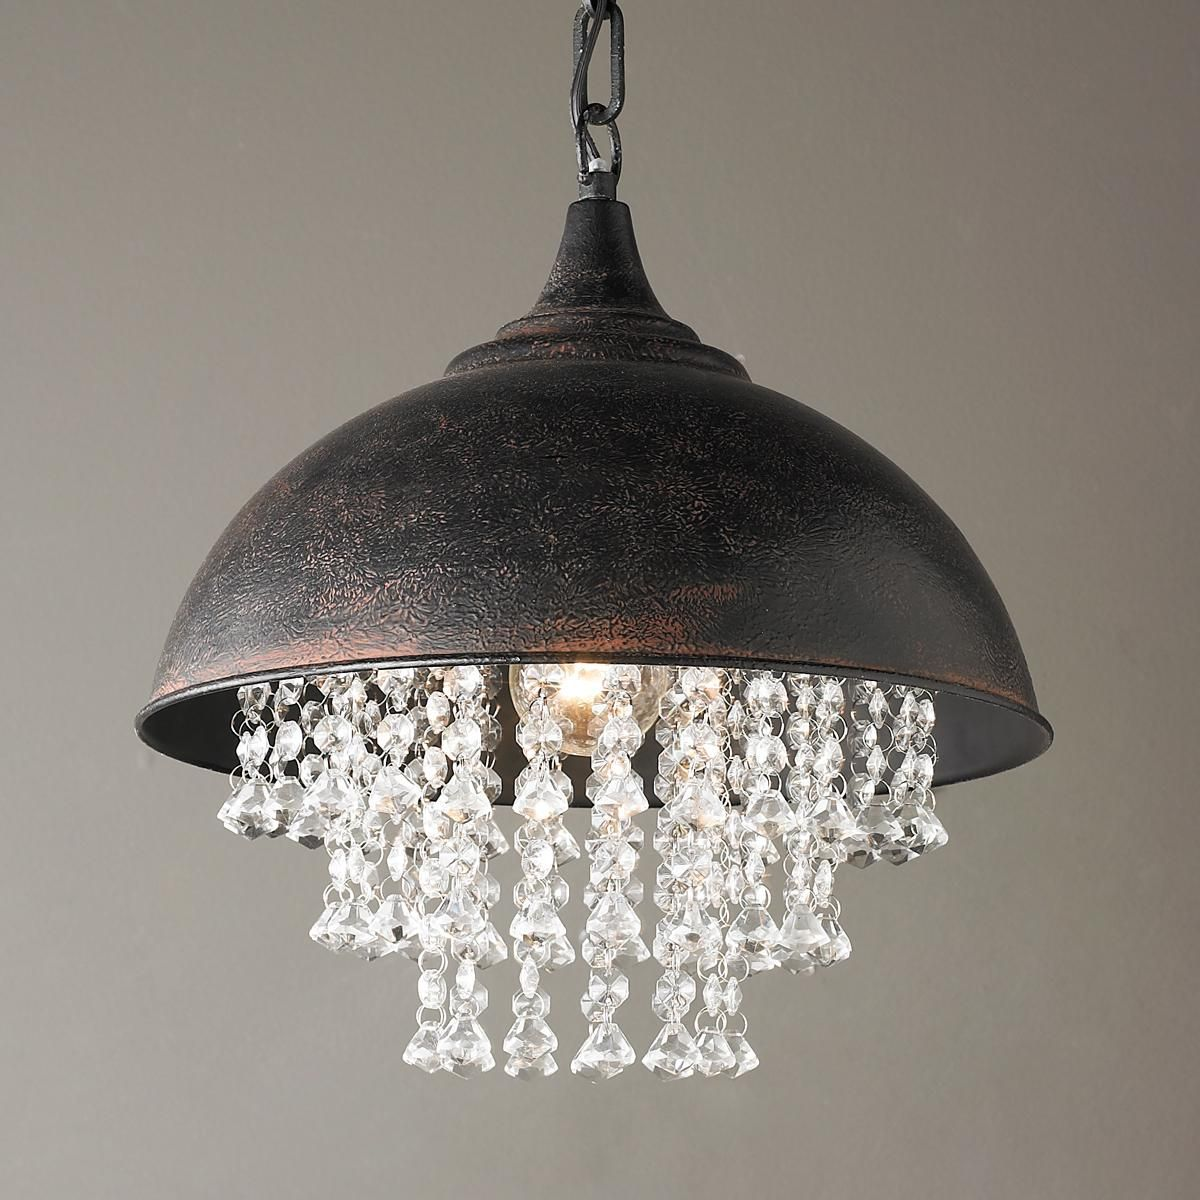 Metal Dome Pendant with Crystals | Canopy, Urban and Chains